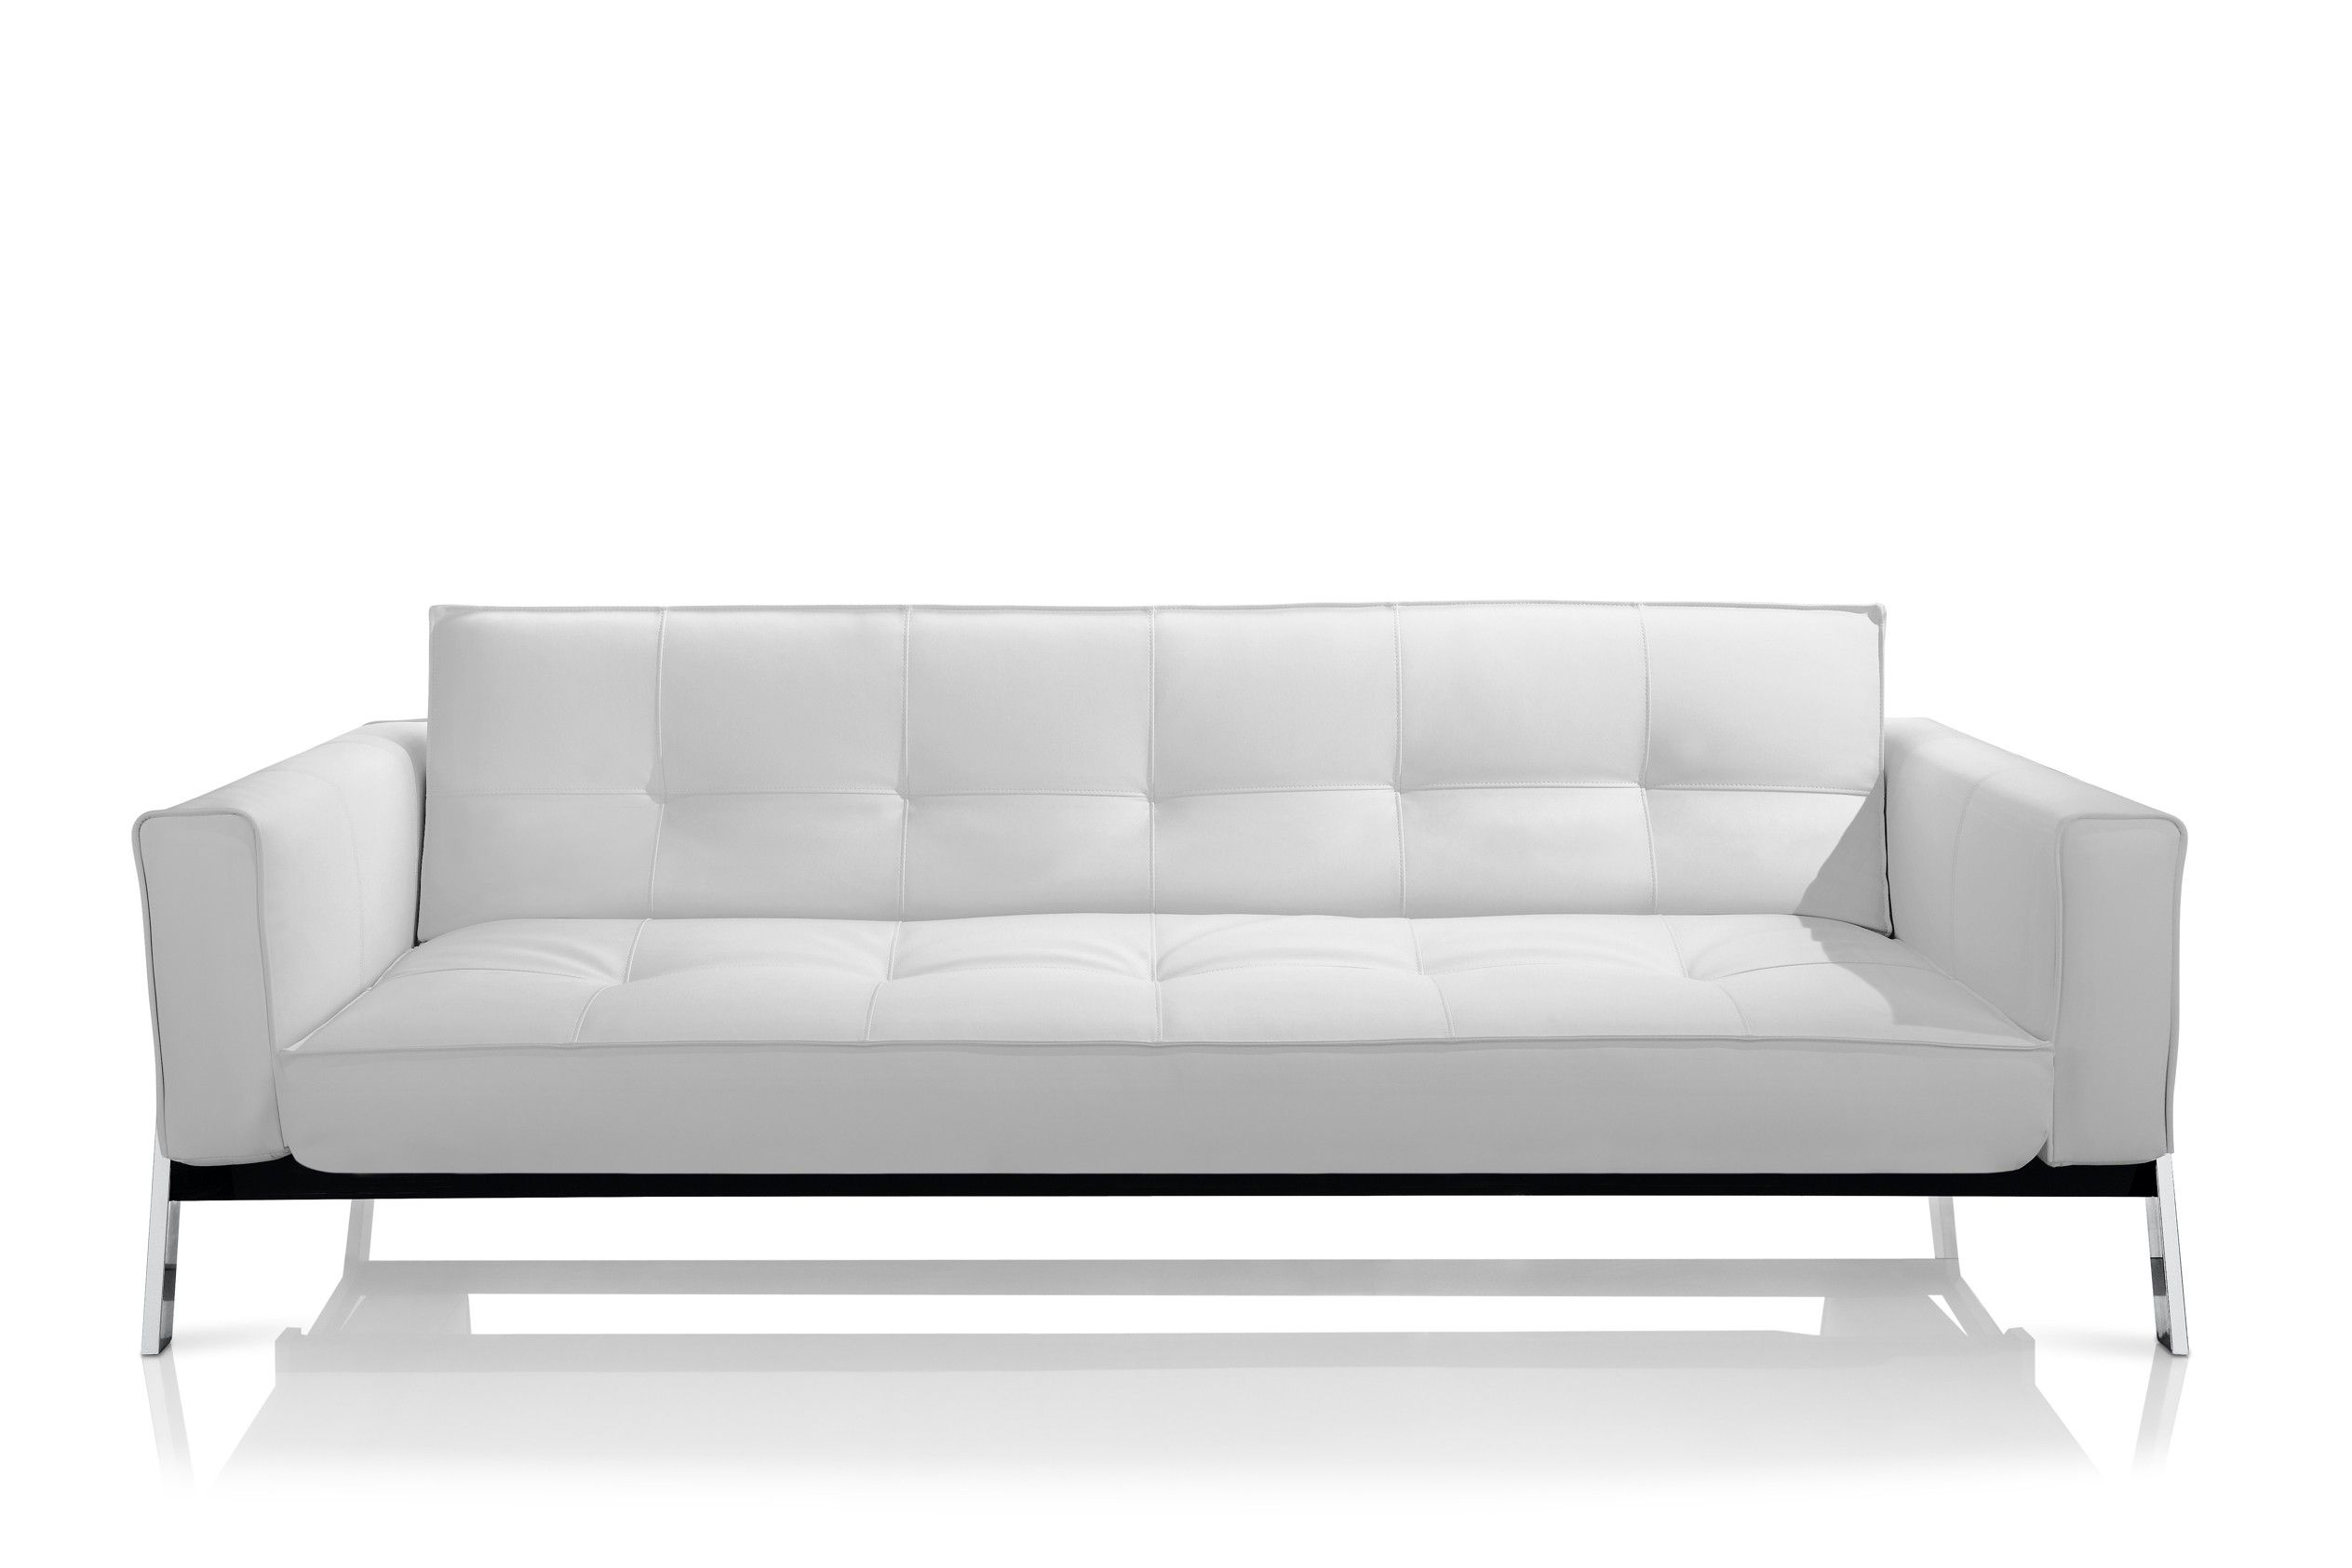 Awesome white fabric sofa new white fabric sofa 30 sofas and couches set with white fabric Designer loveseats